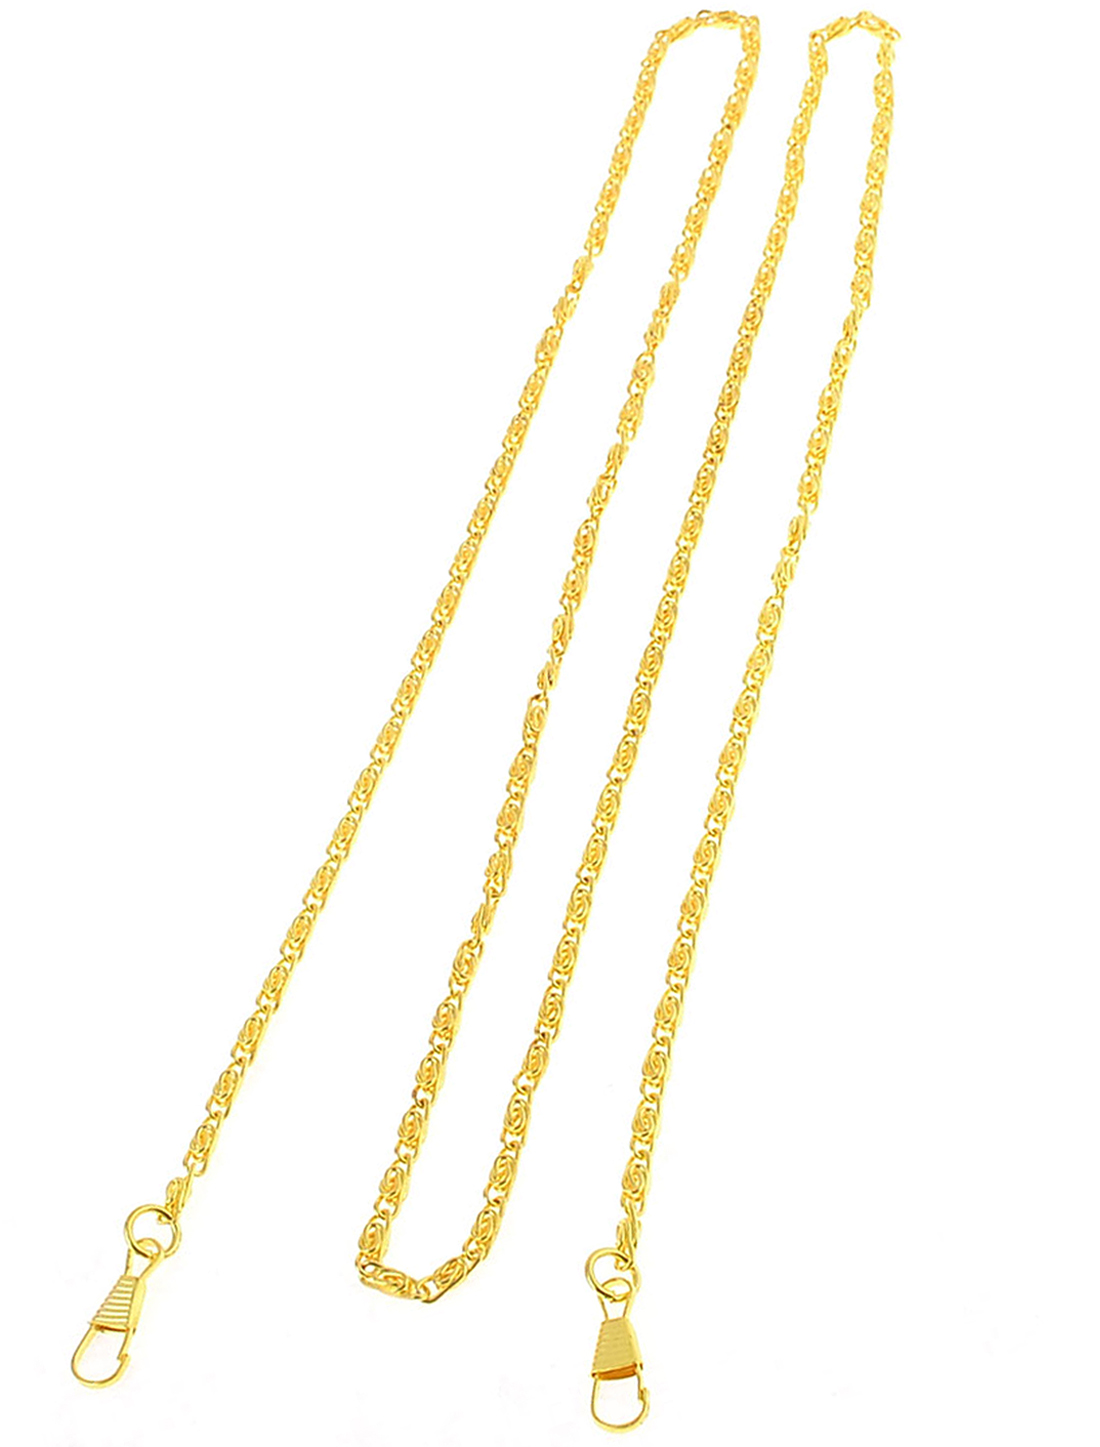 120cm Long Metallic Chain Decoration Gold Tone for Handbag Bag